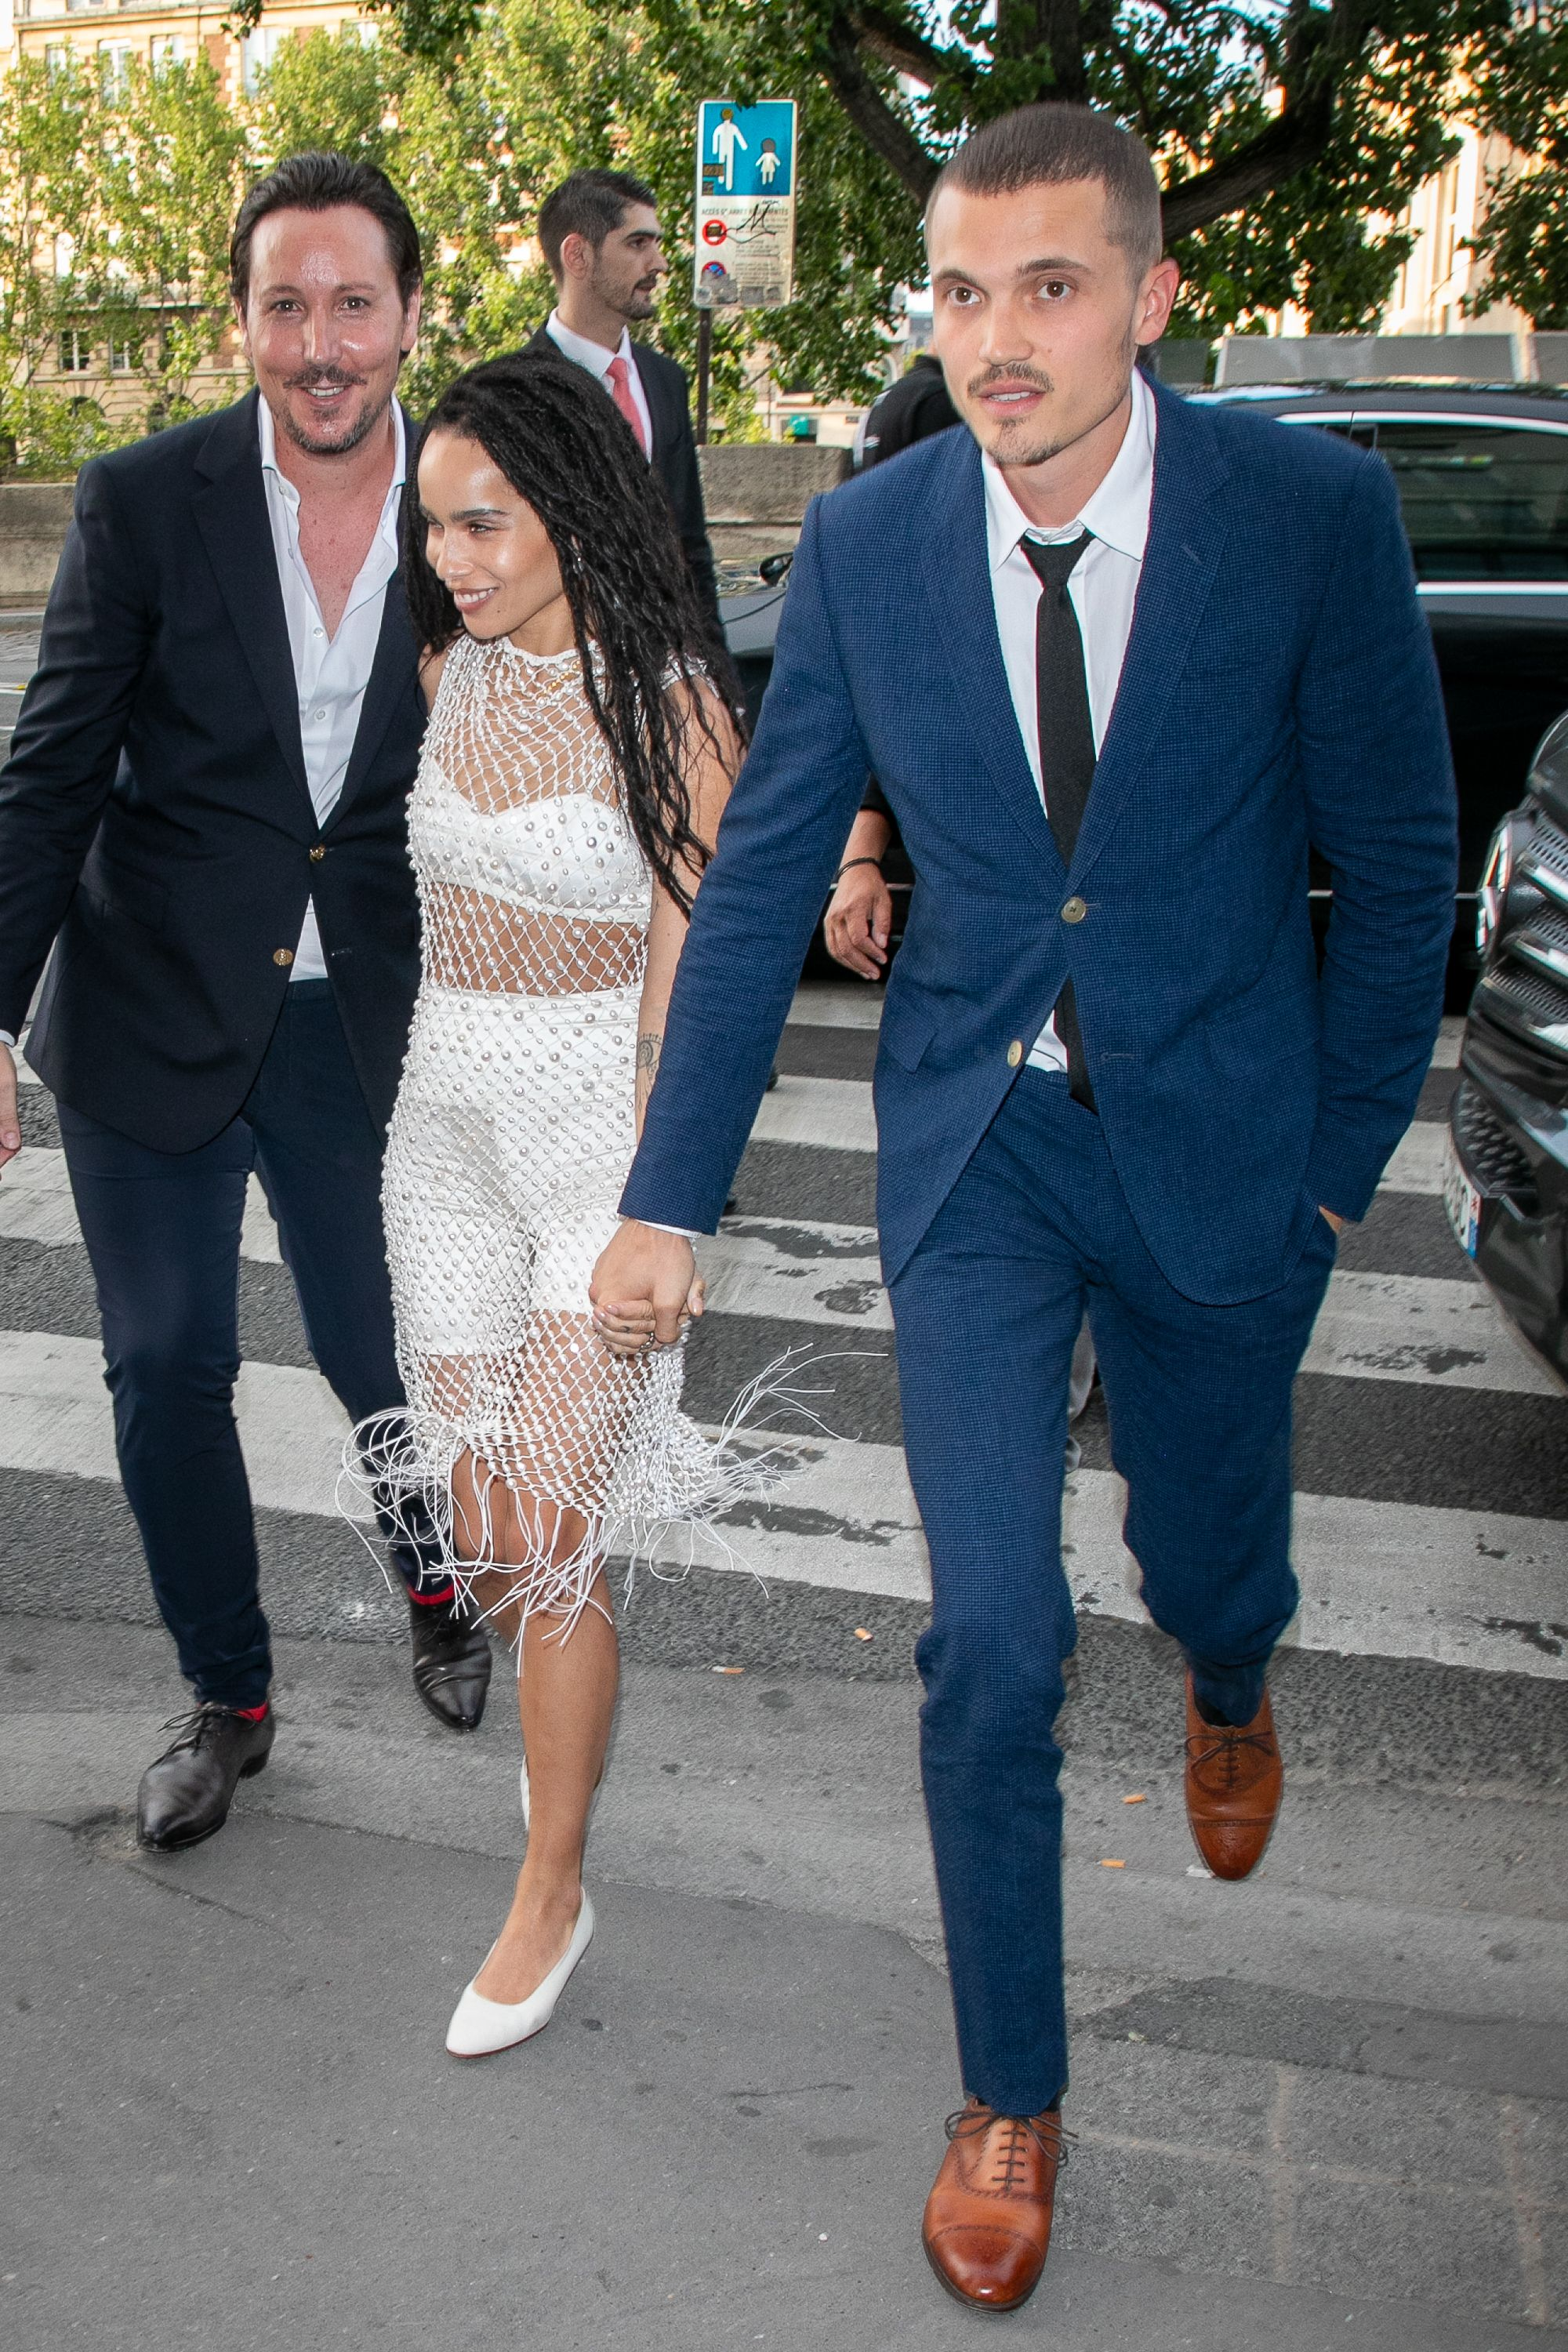 Zoe Kravitz Wears Danielle Frankel At Wedding Rehearsal Dinner